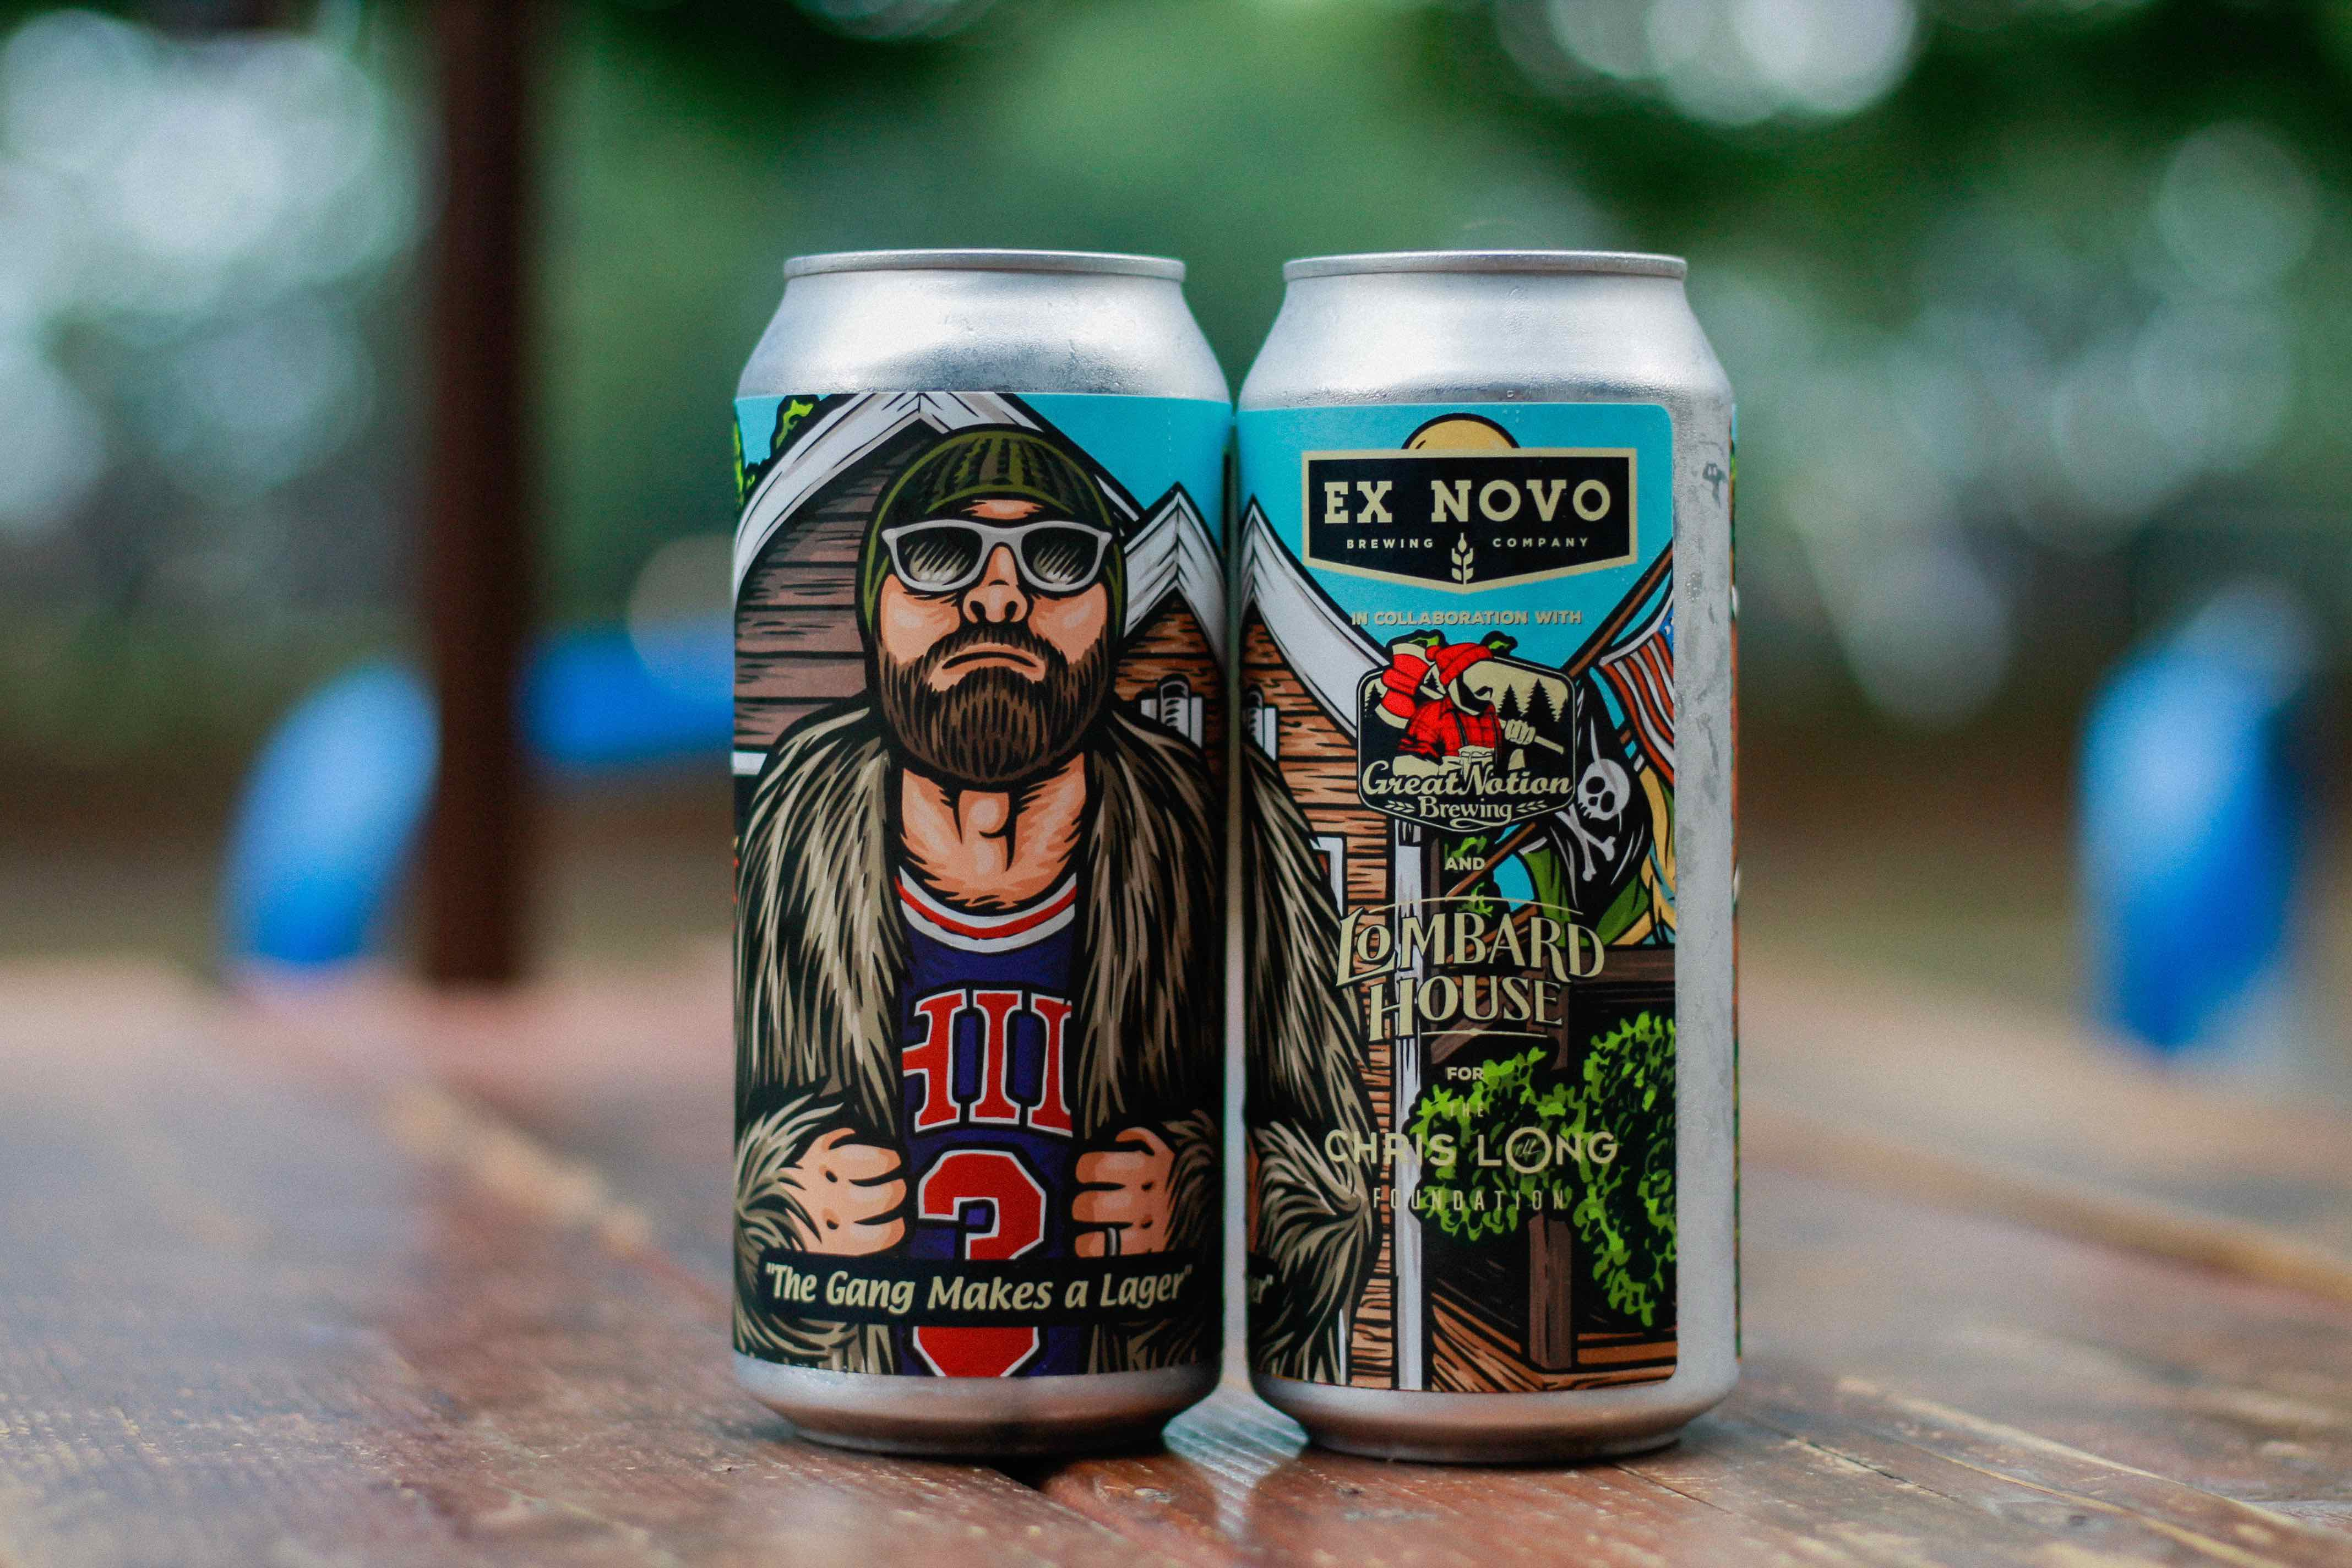 Ex Novo Brewing and Great Notion Brewing The Gang Makes Lager courtesy of Ex Novo Brewing